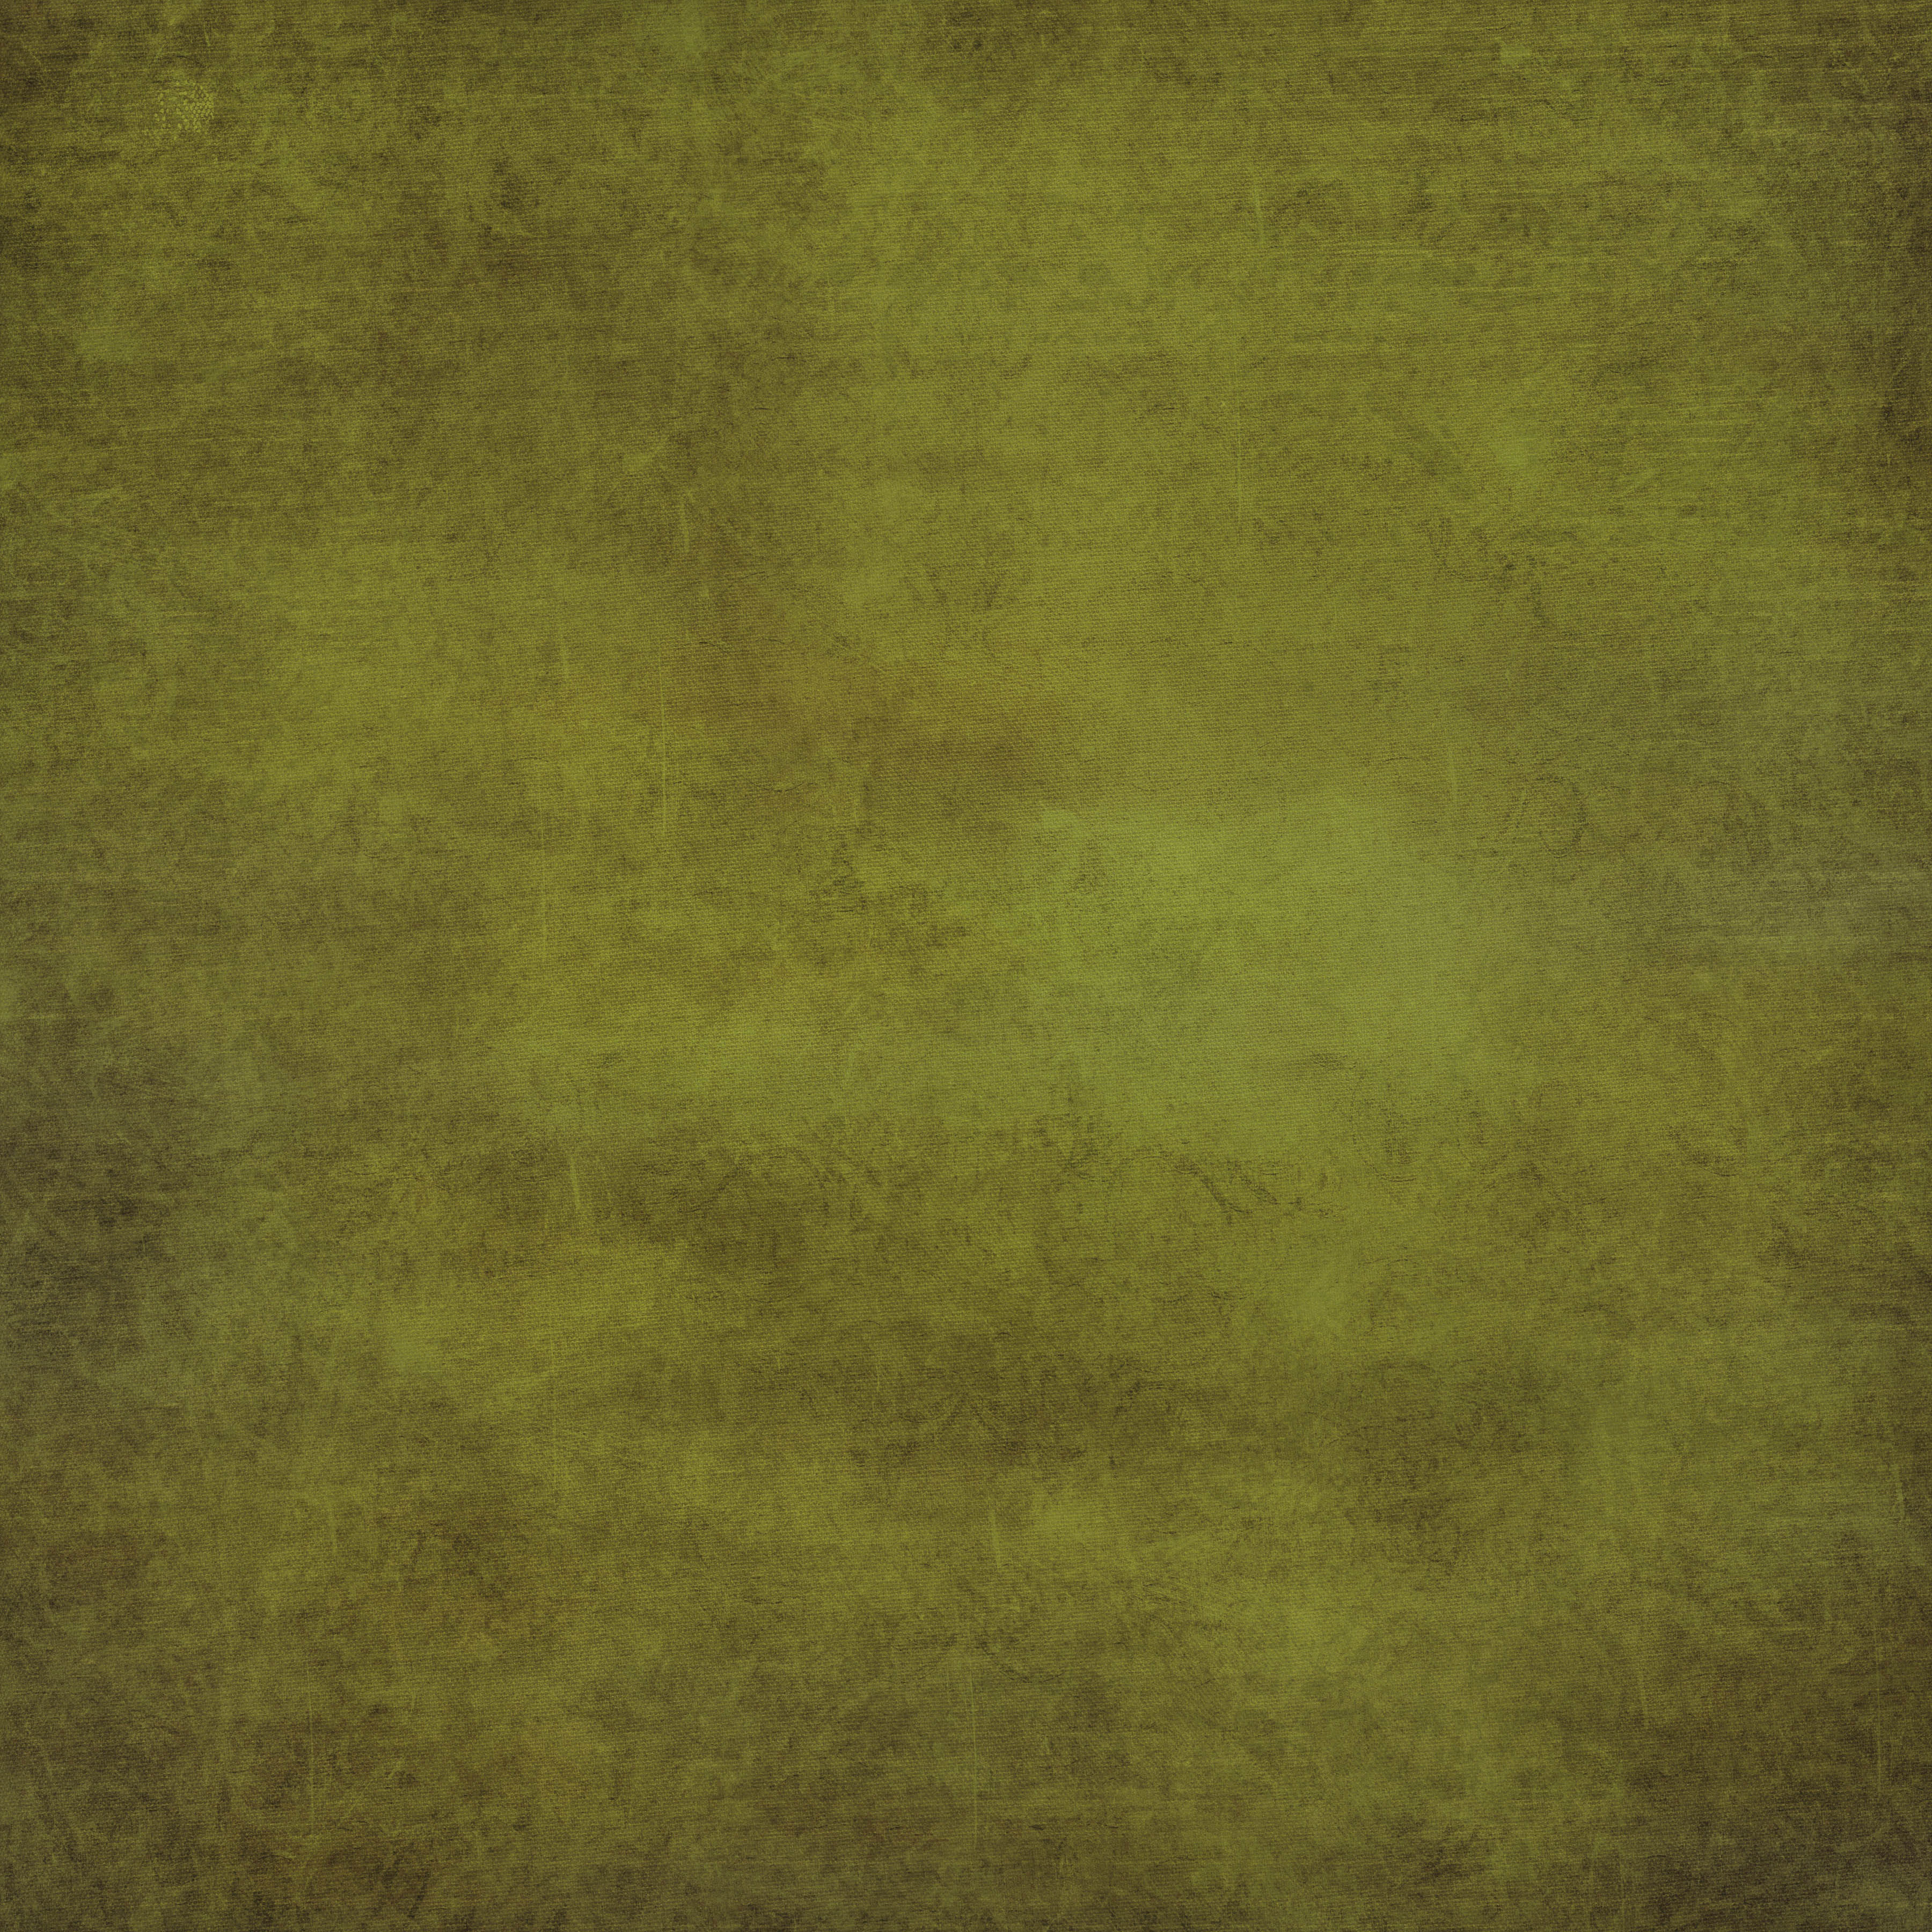 Green Mottled Background, Ornate, Repetition, Repeat, Renaissance, HQ Photo